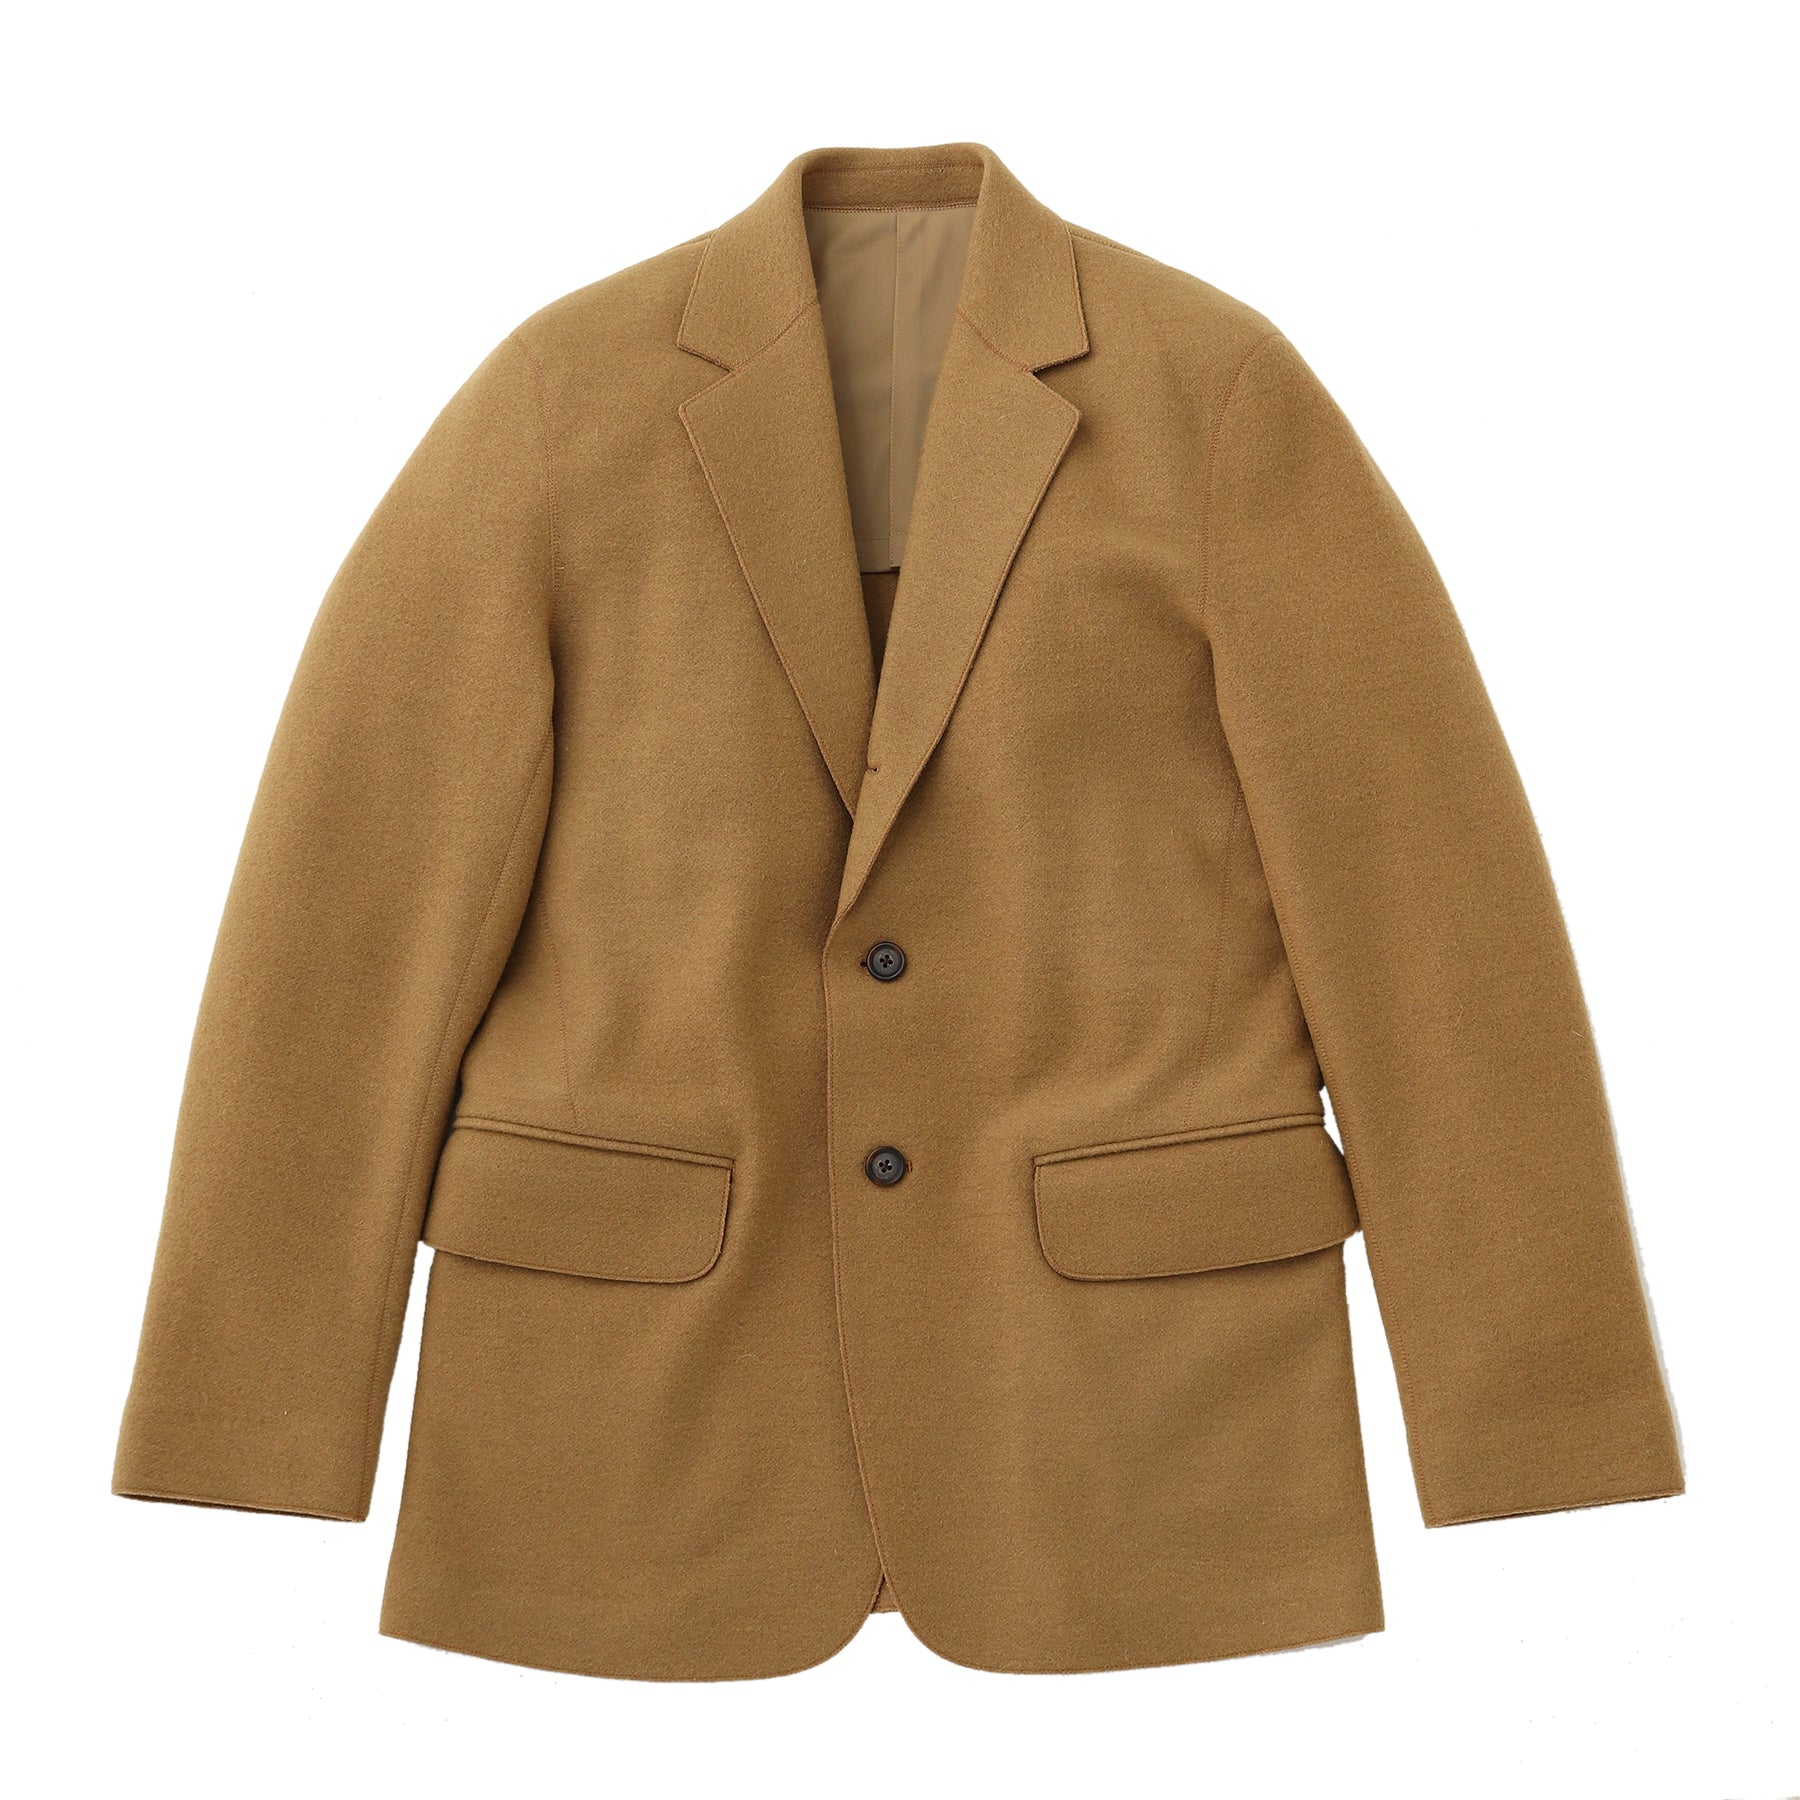 TPS_Virgin Wool Jacket<br>Col.Camel